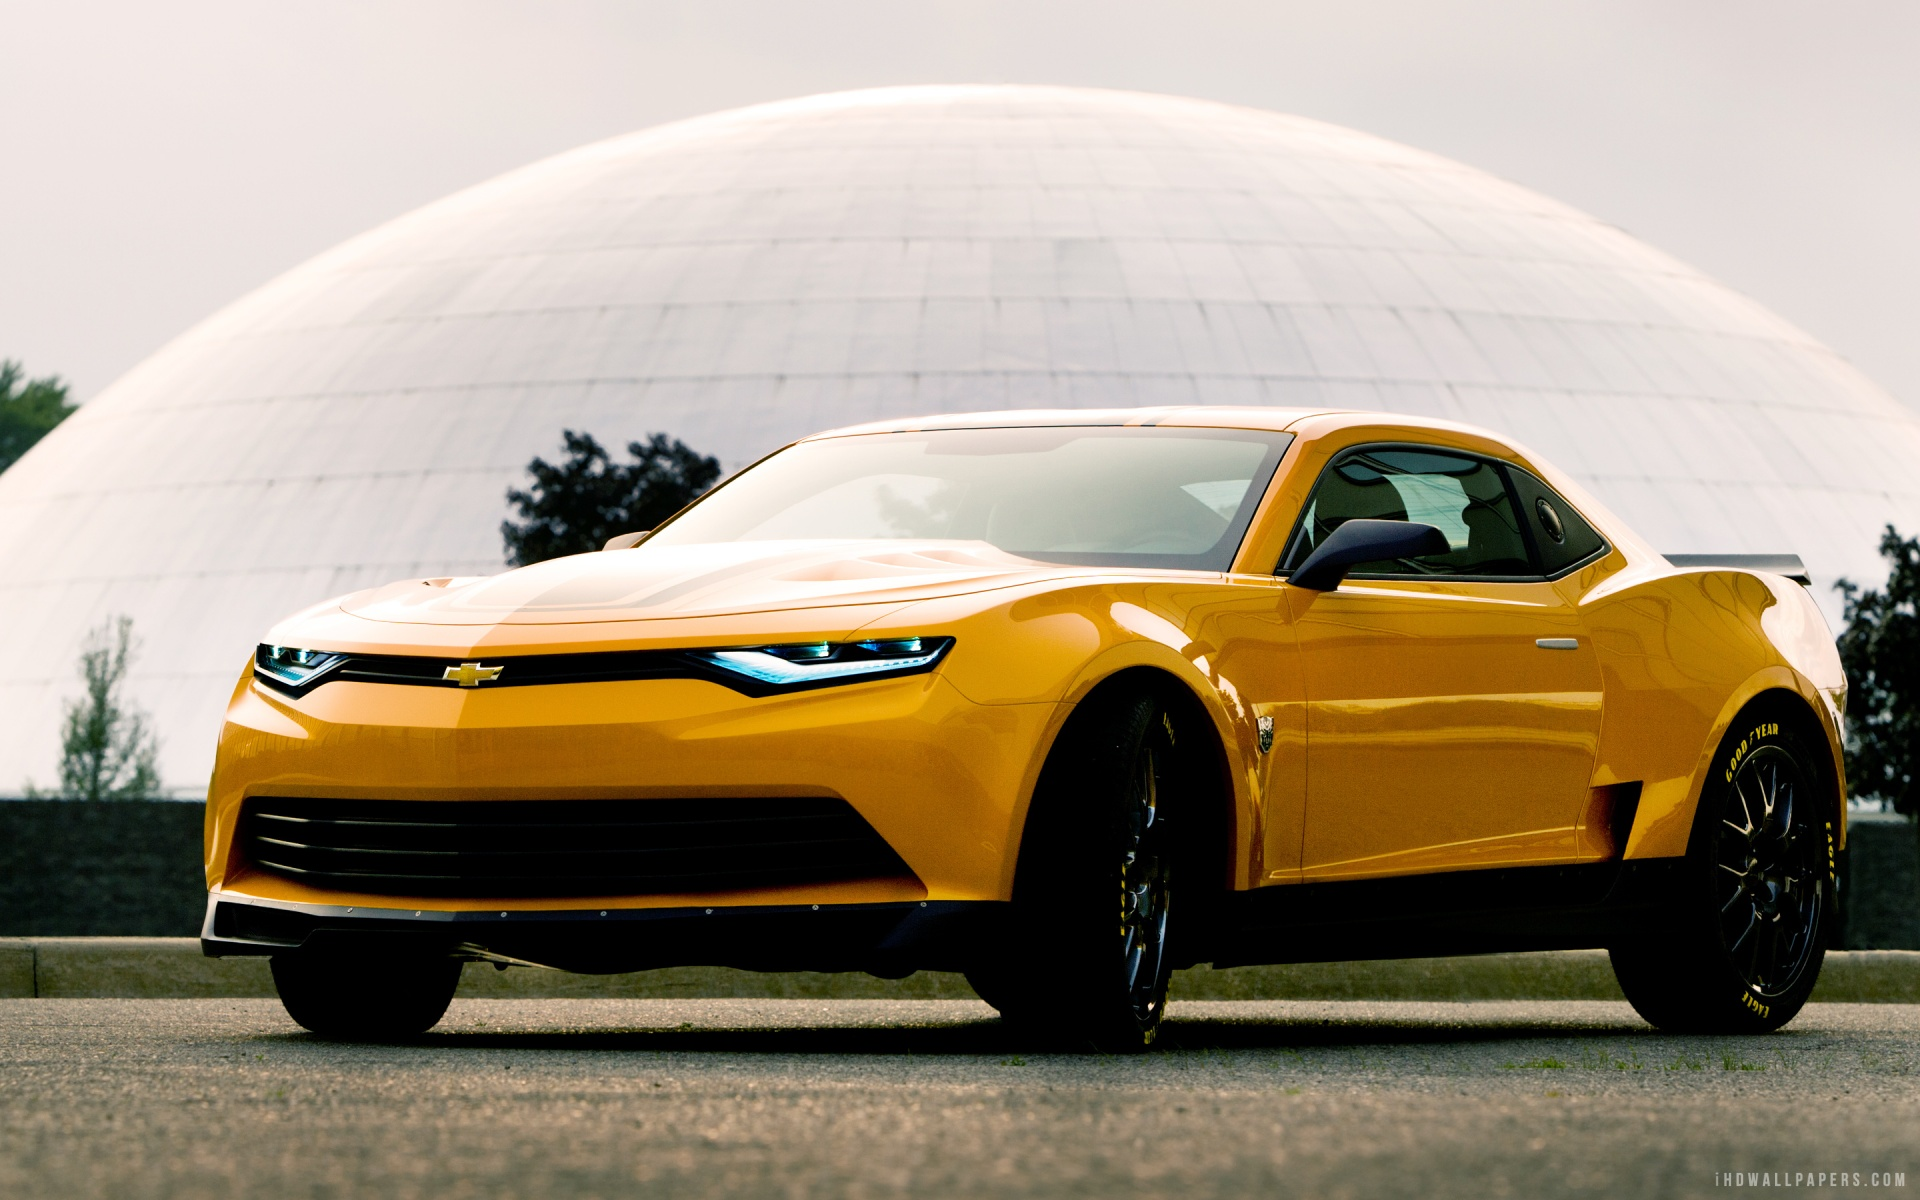 2014 Chevrolet Camaro Bumblebee HD Wallpaper   iHD Wallpapers 1920x1200